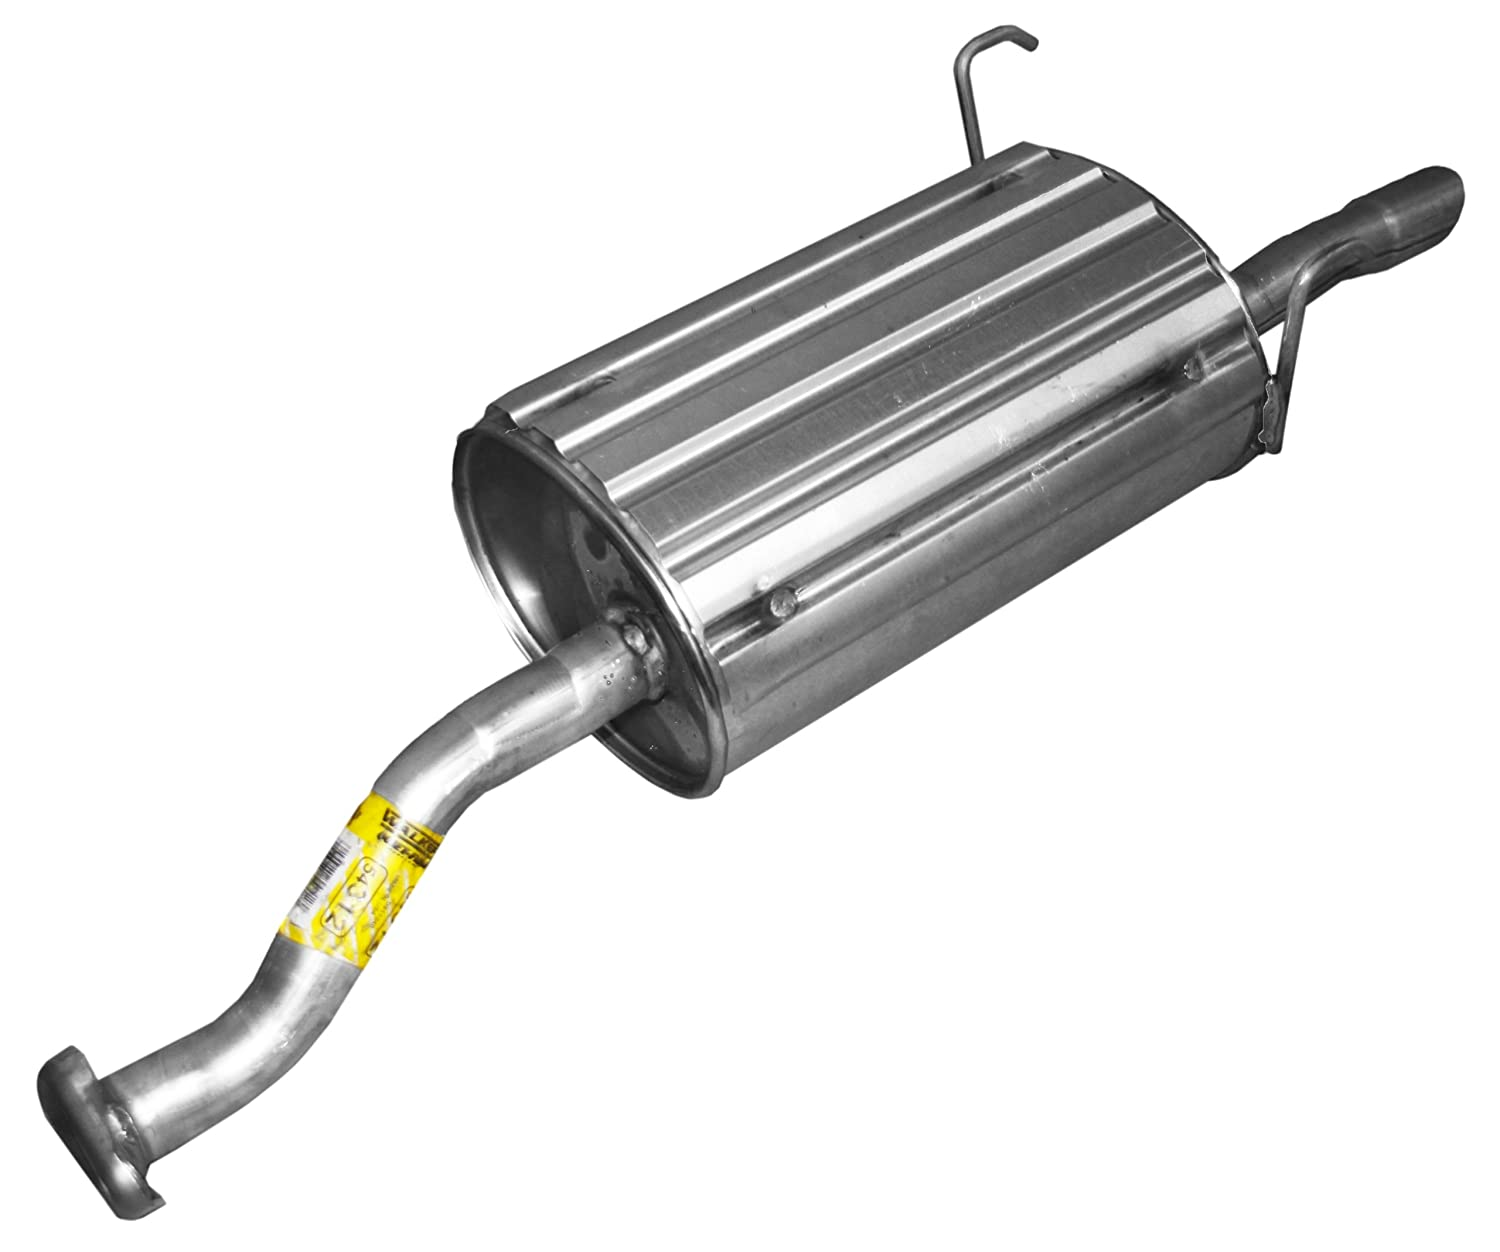 Direct-flow mufflers: install or not 33